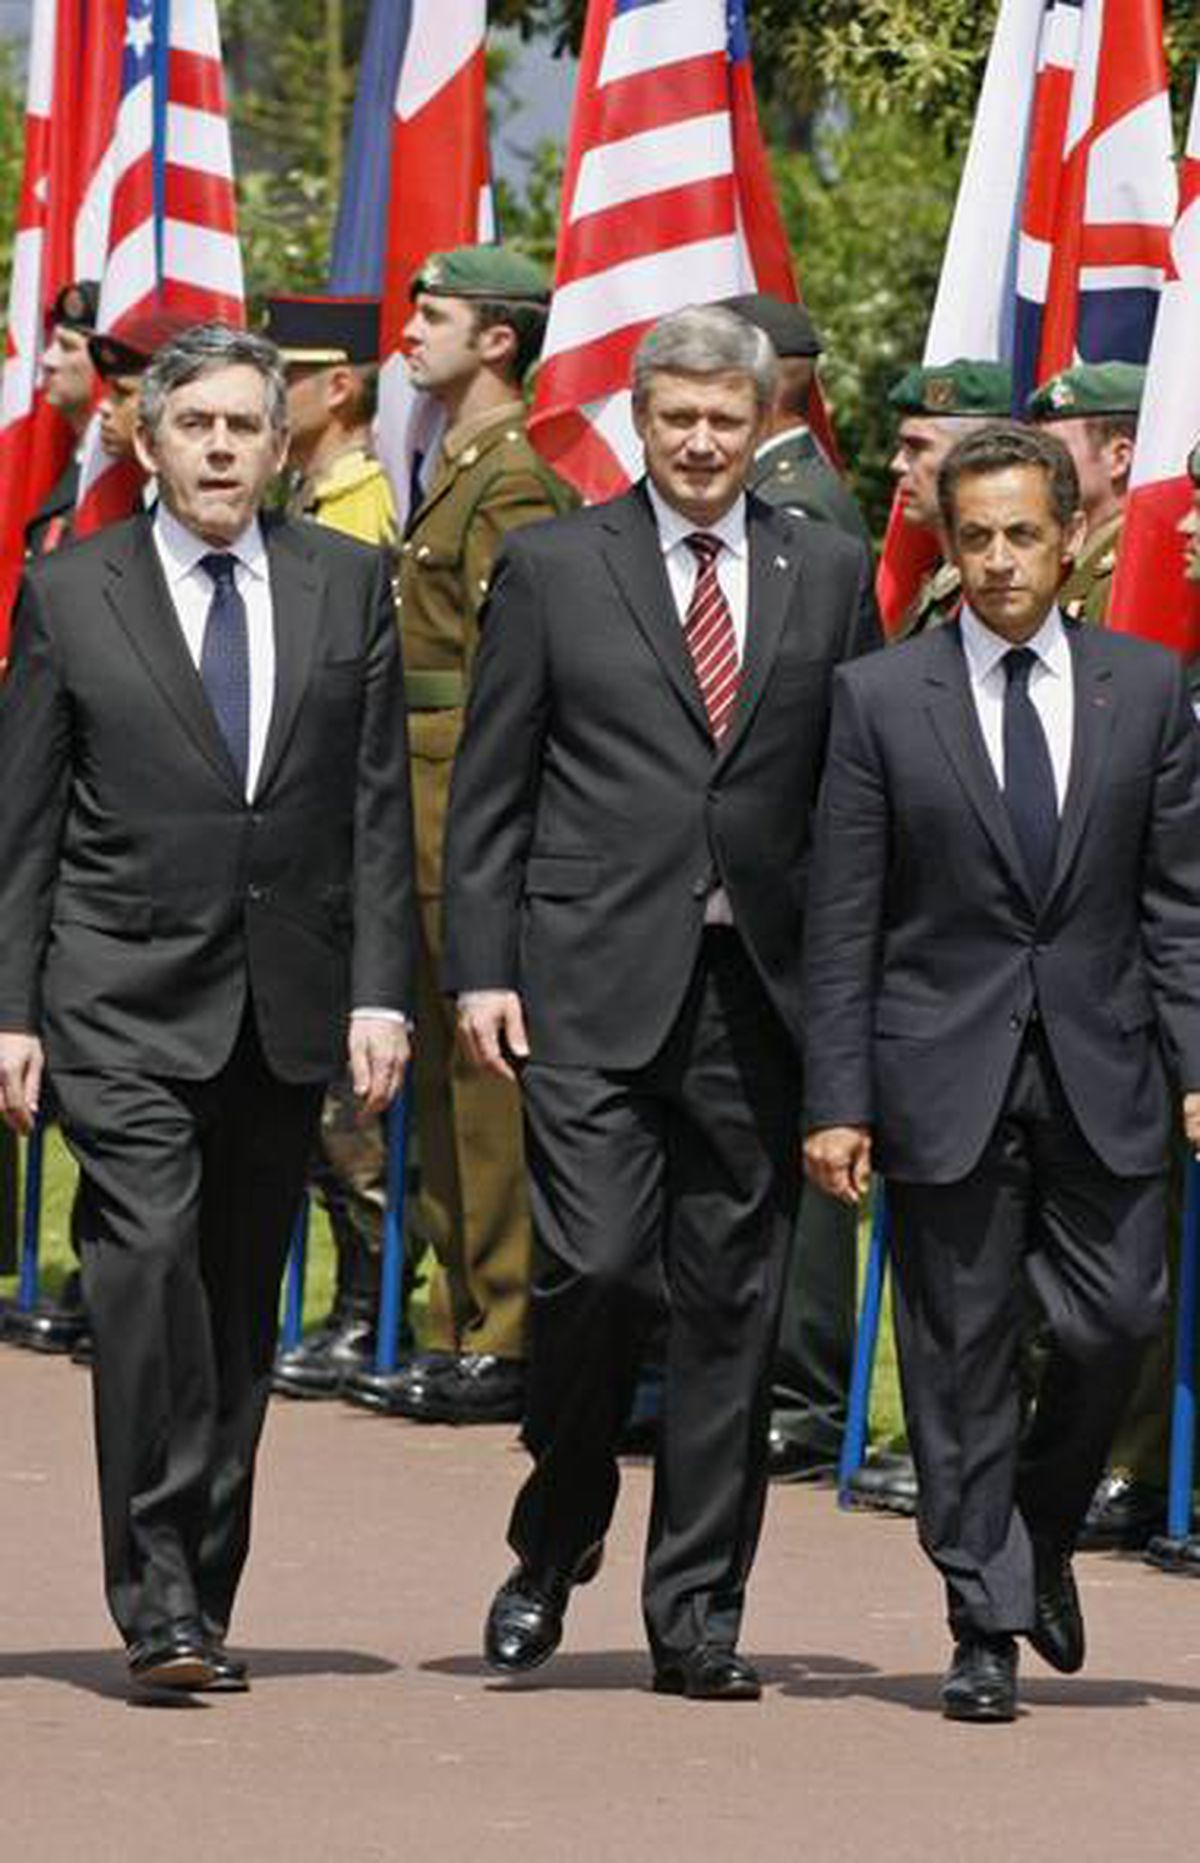 "FRANCE/CANADA/BRITAIN: French President Nicolas Sarkozy invited Prime Minister Stephen Harper to France's 2009 D-Day memorial because he felt sympathy for Mr. Harper's political troubles, according to a June 8, 2009, cable. French official Jean-David Levitte says Mr. Sarkozy invited Mr. Harper and Britain's then-prime minister, Gordon Brown, because of political need. ""The cases of the UK and Canada were exceptional, he added, because both Gordon Brown and Stephen Harper were in such political trouble at home that the survival of their governments was at stake,"" the cable records Mr. Levitte as explaining."